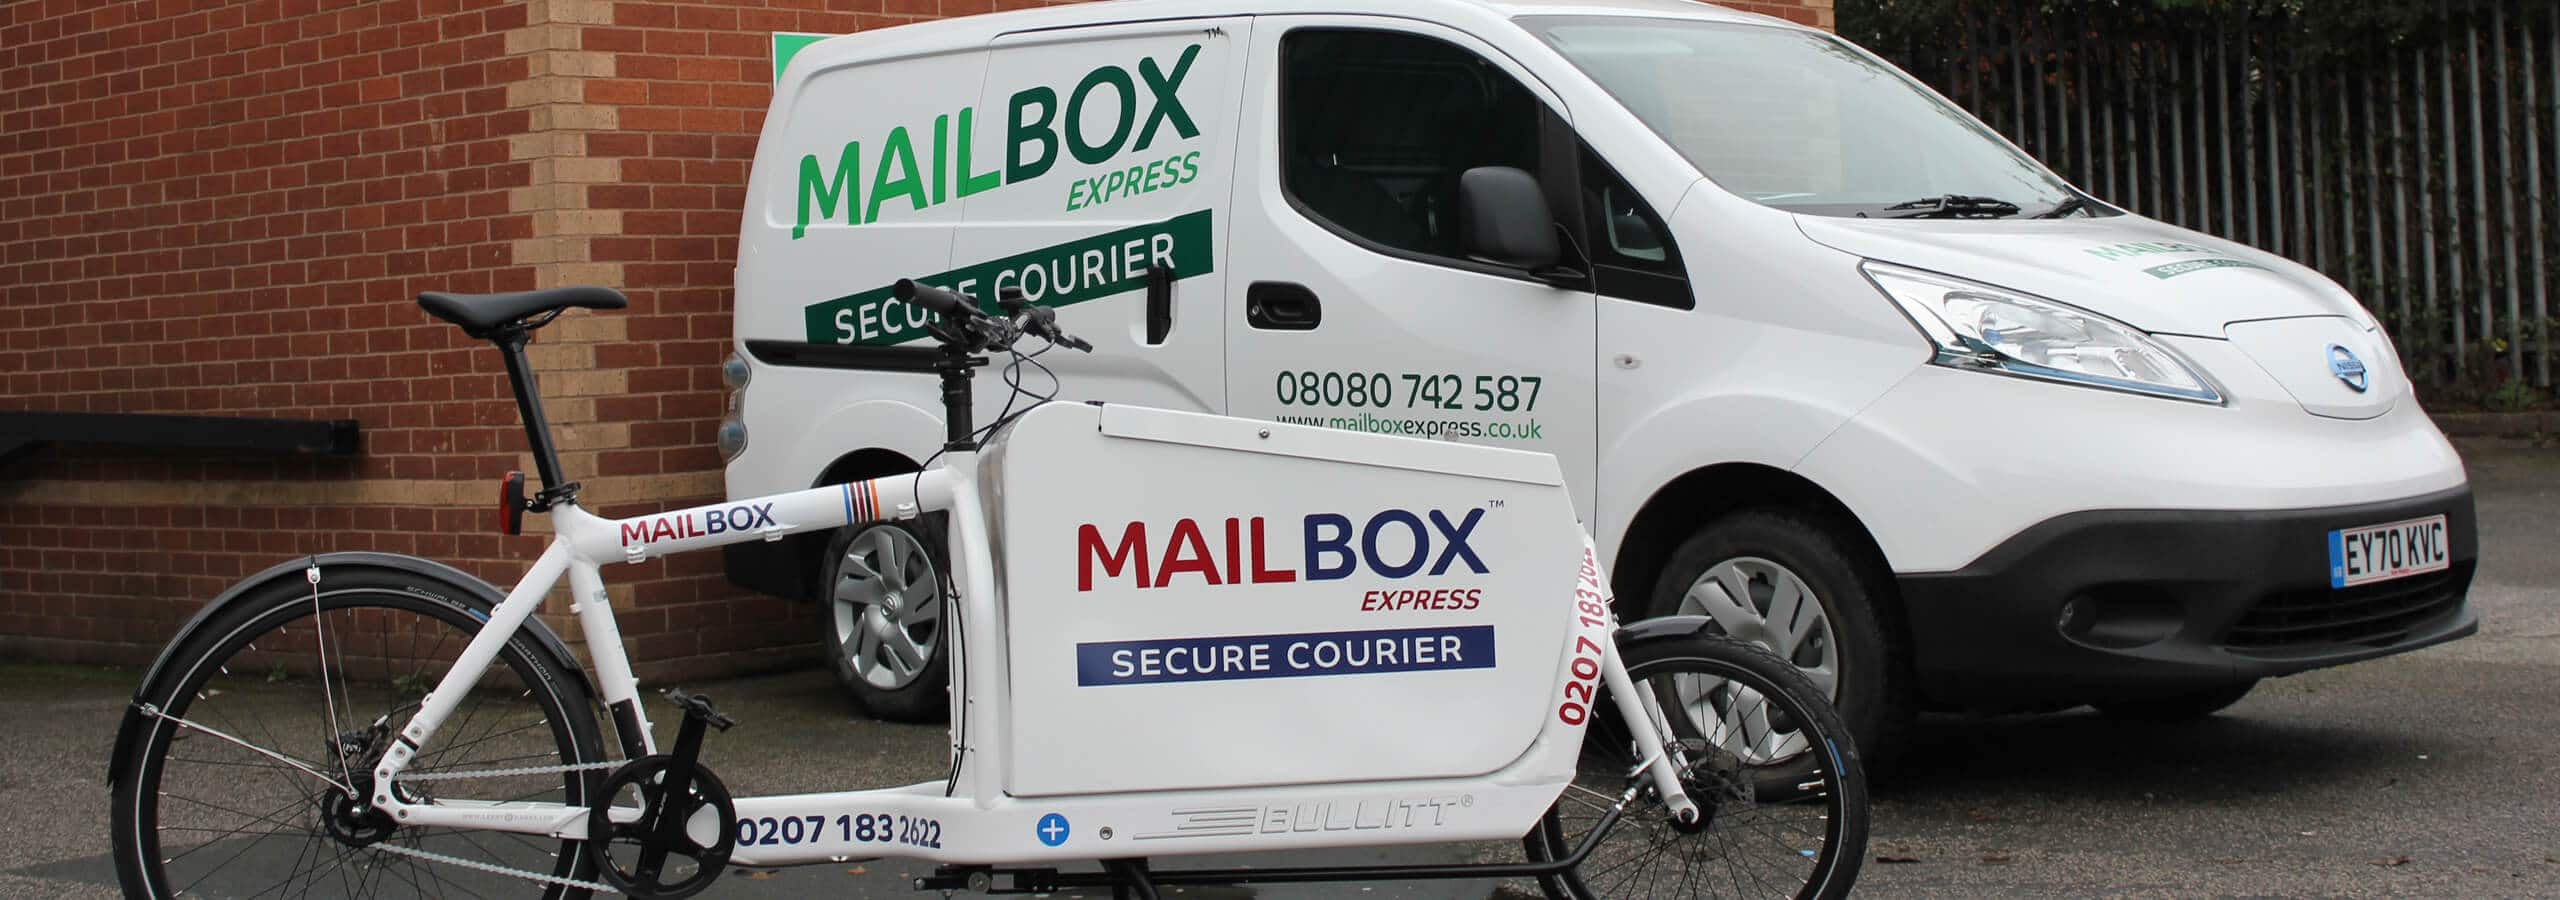 Mailbox branded van and push bike outside Mailbox building